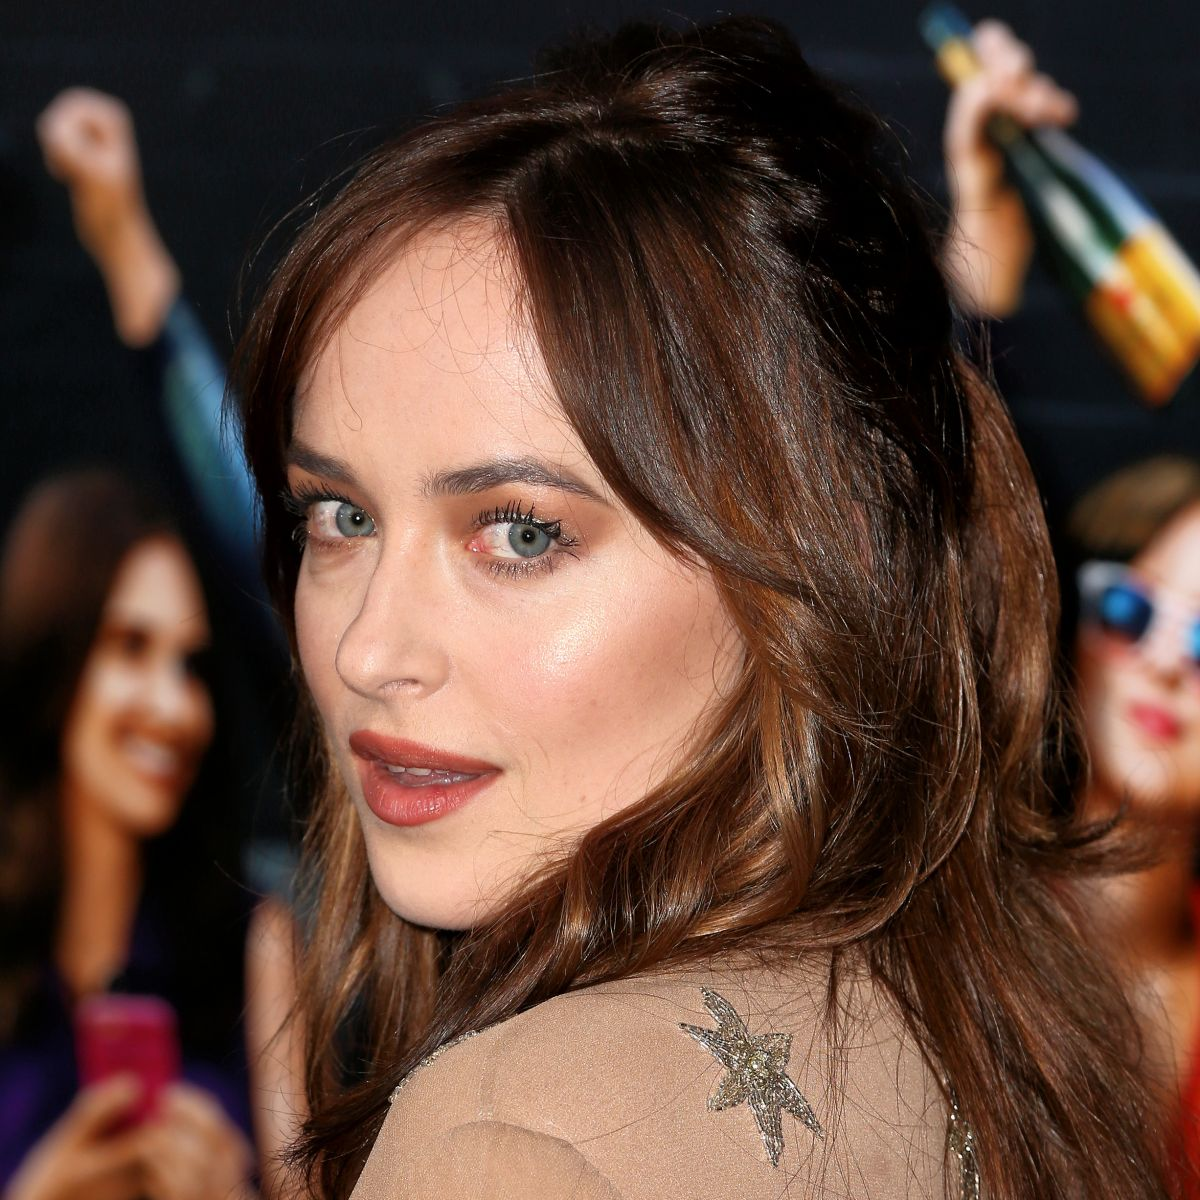 Dakota johnson at how to be single premiere in new york 02032016 dakota johnson at how to be single premiere in new york 02032016 ccuart Images